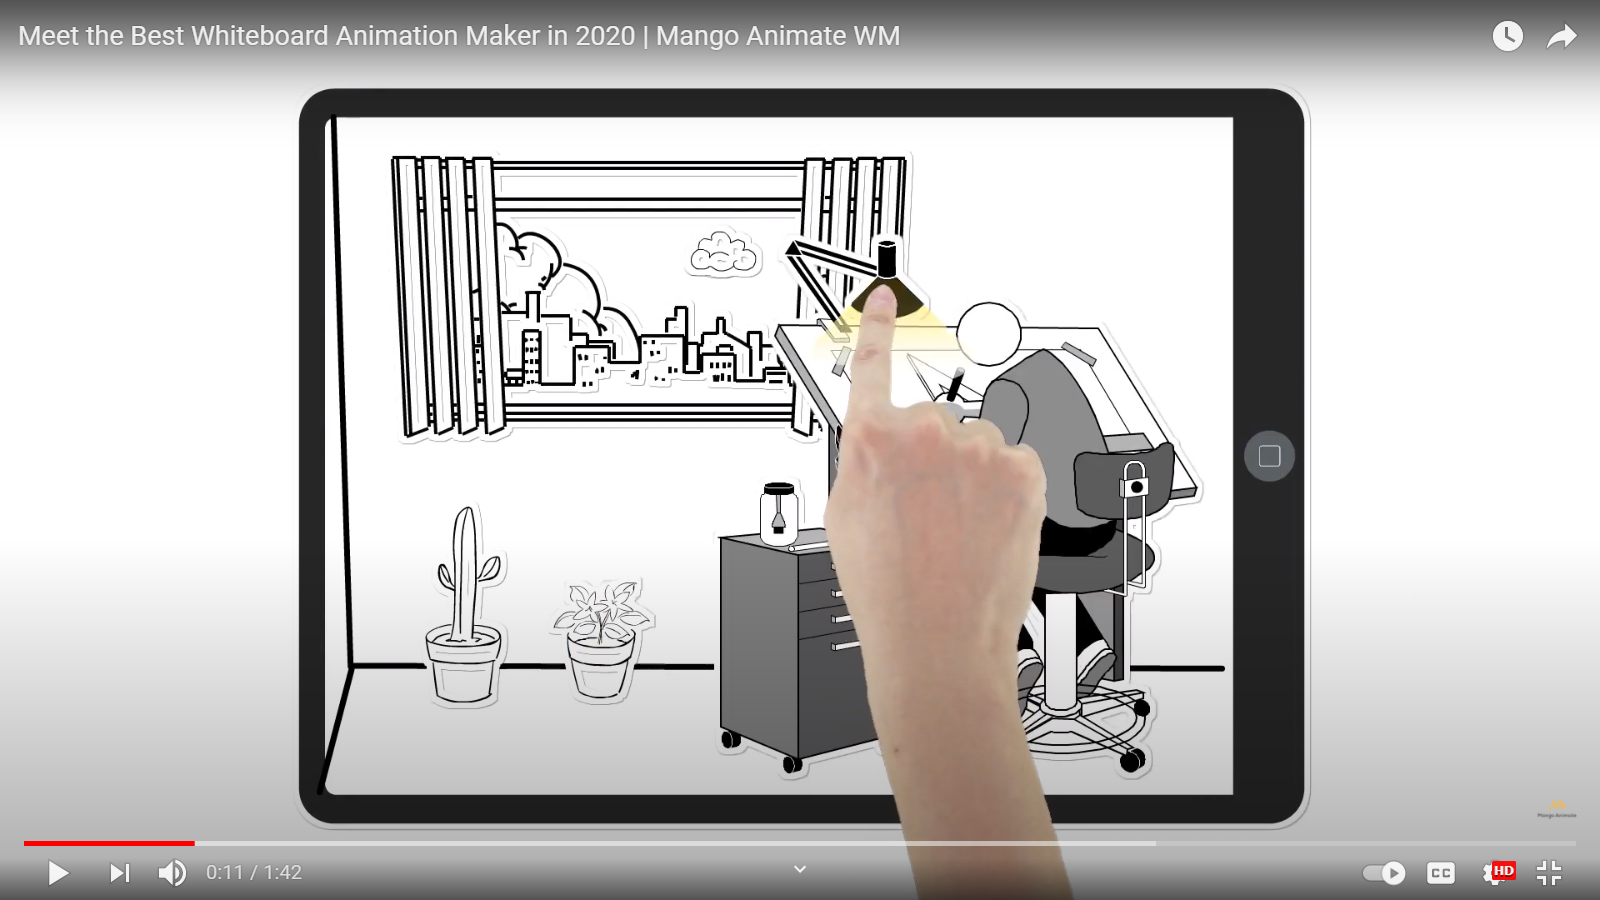 Mango Animate Hosts the Best Whiteboard Animation Software in the Market